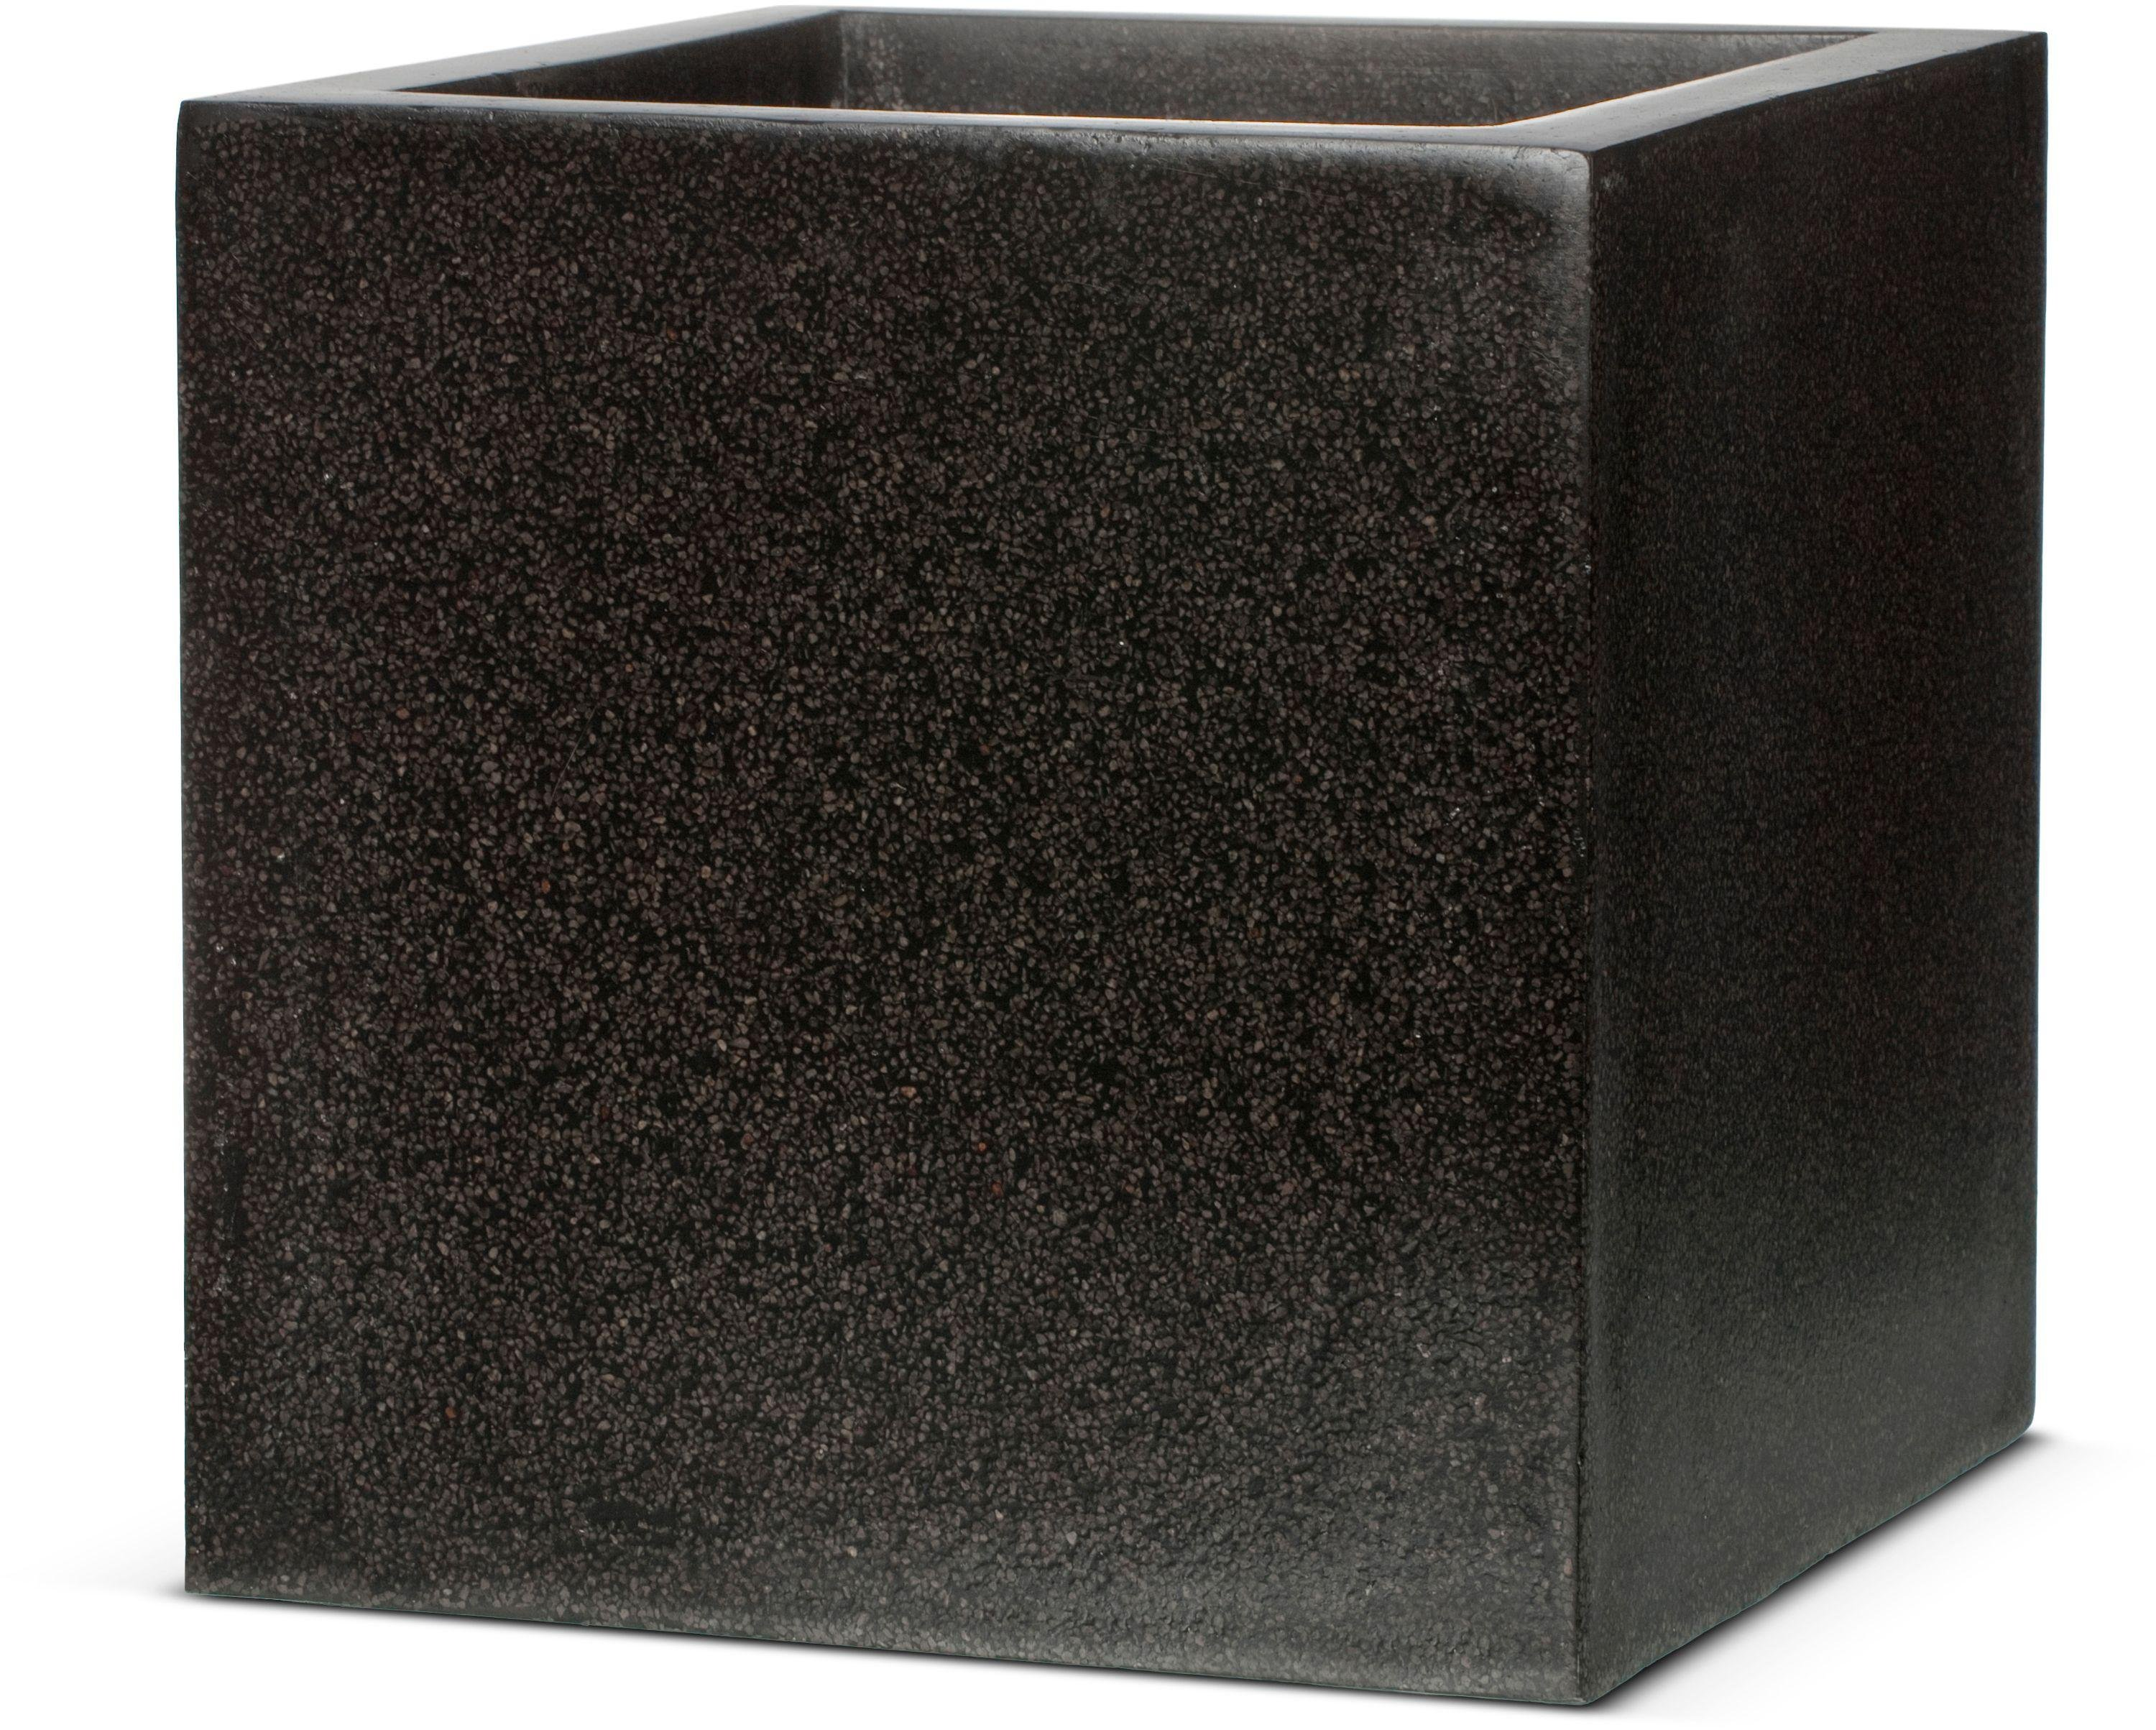 Image of Capi Lux Black Square Planter - 30cm.